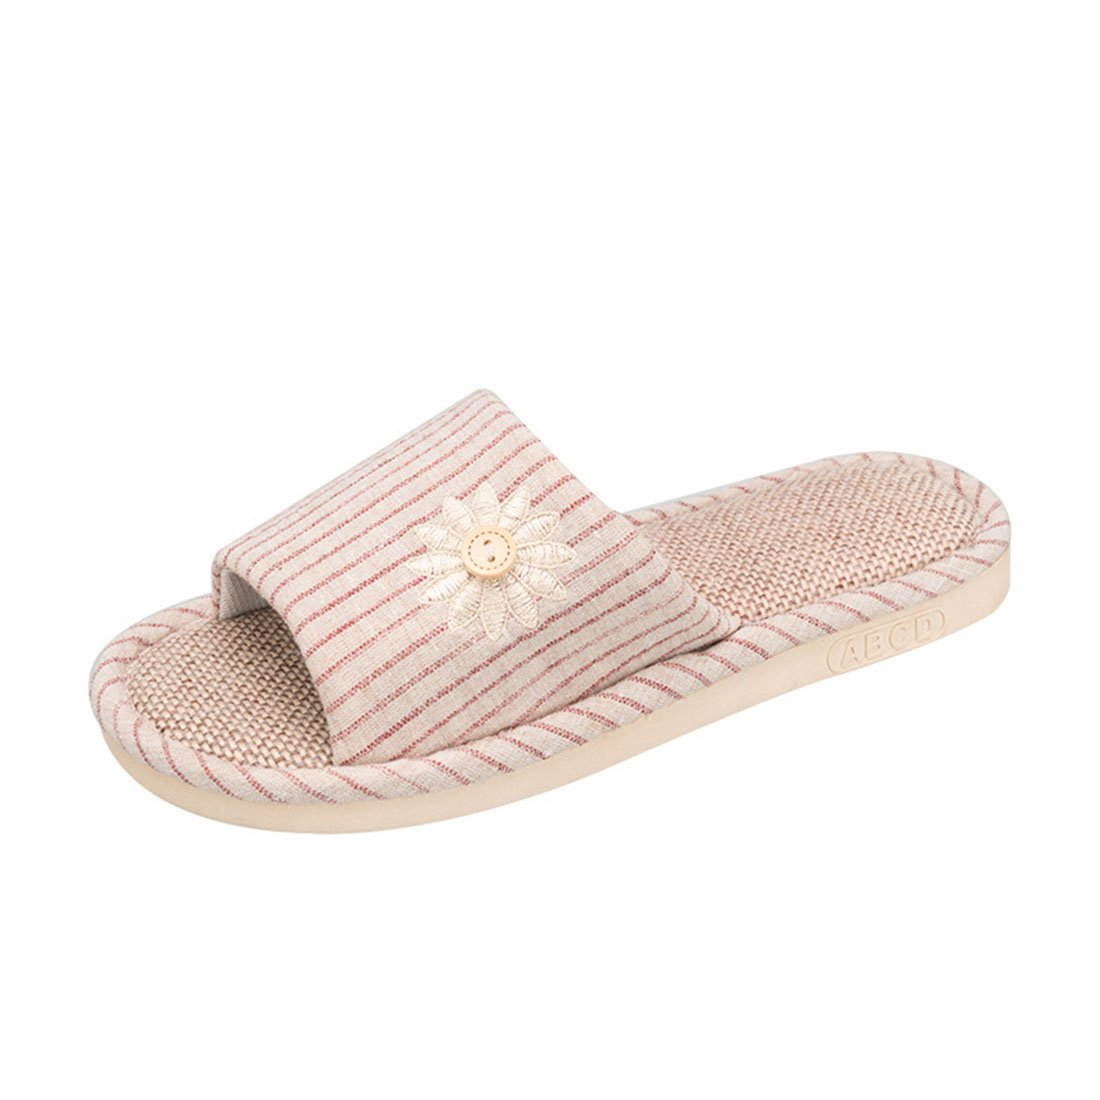 Rockynice House Slipper Unisex Striped Linen Skidproof House Slippers for Travel House Hotel Spa Bedroom (Women:8.5-10 M US/10.24 inch, Light red)